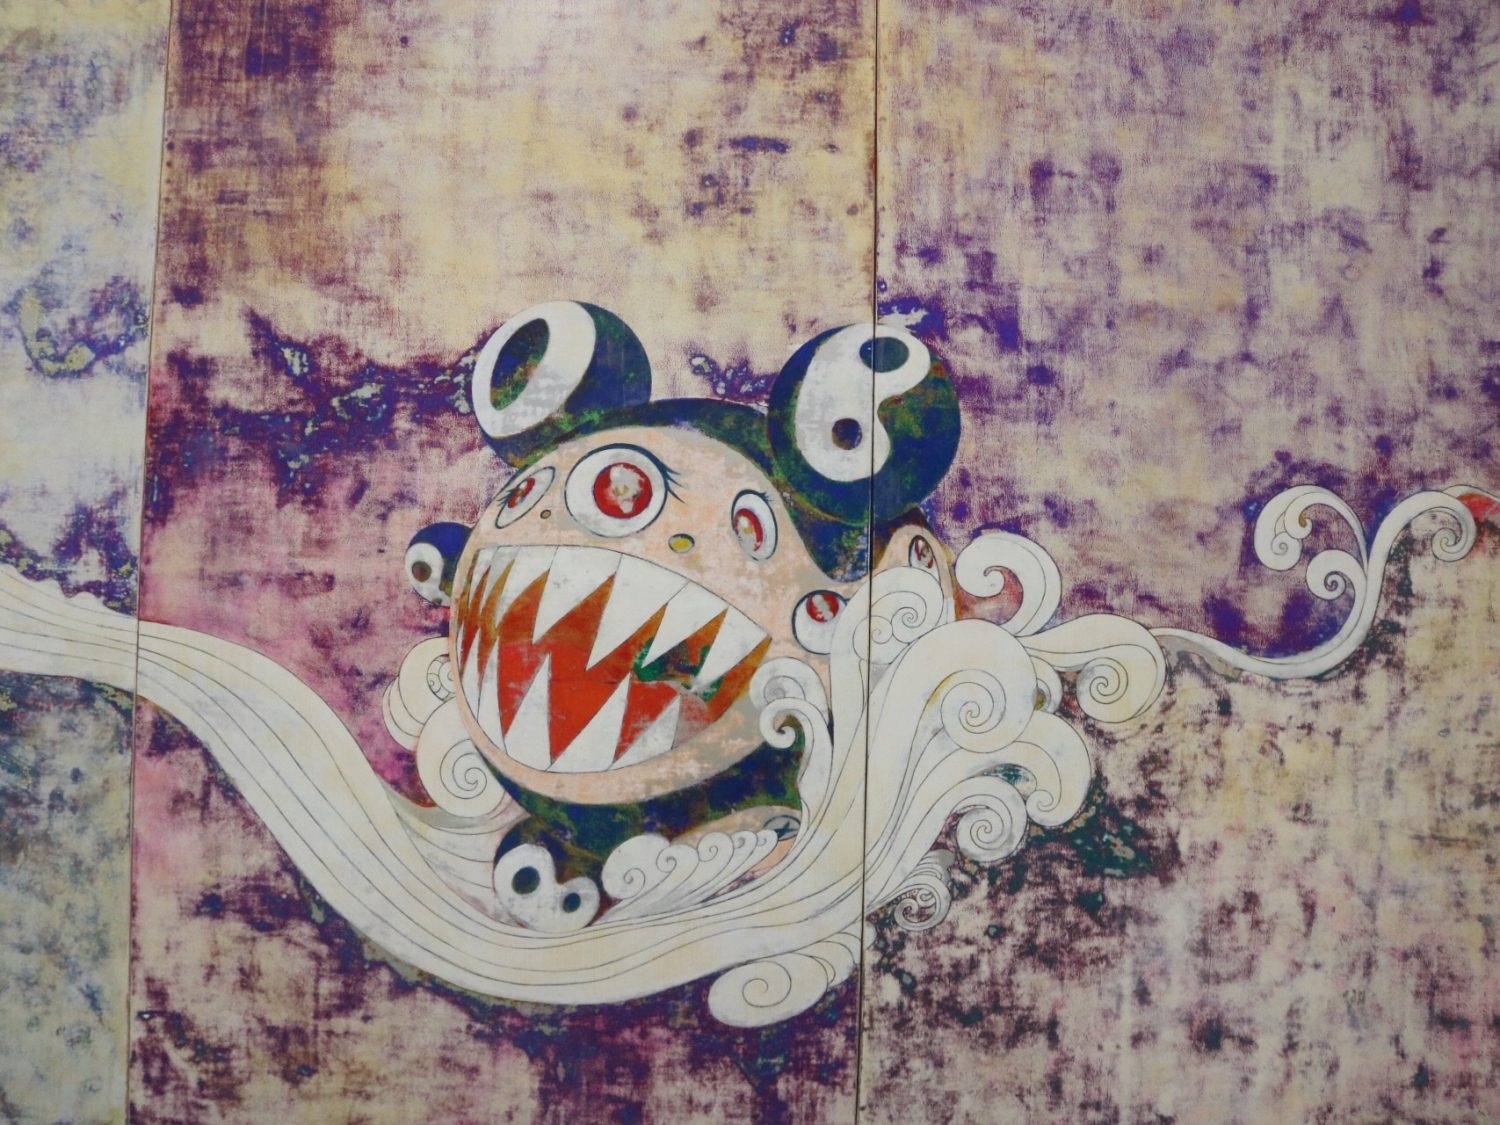 Takashi Murakami: The Octopus Eats its Own Leg Exhibit